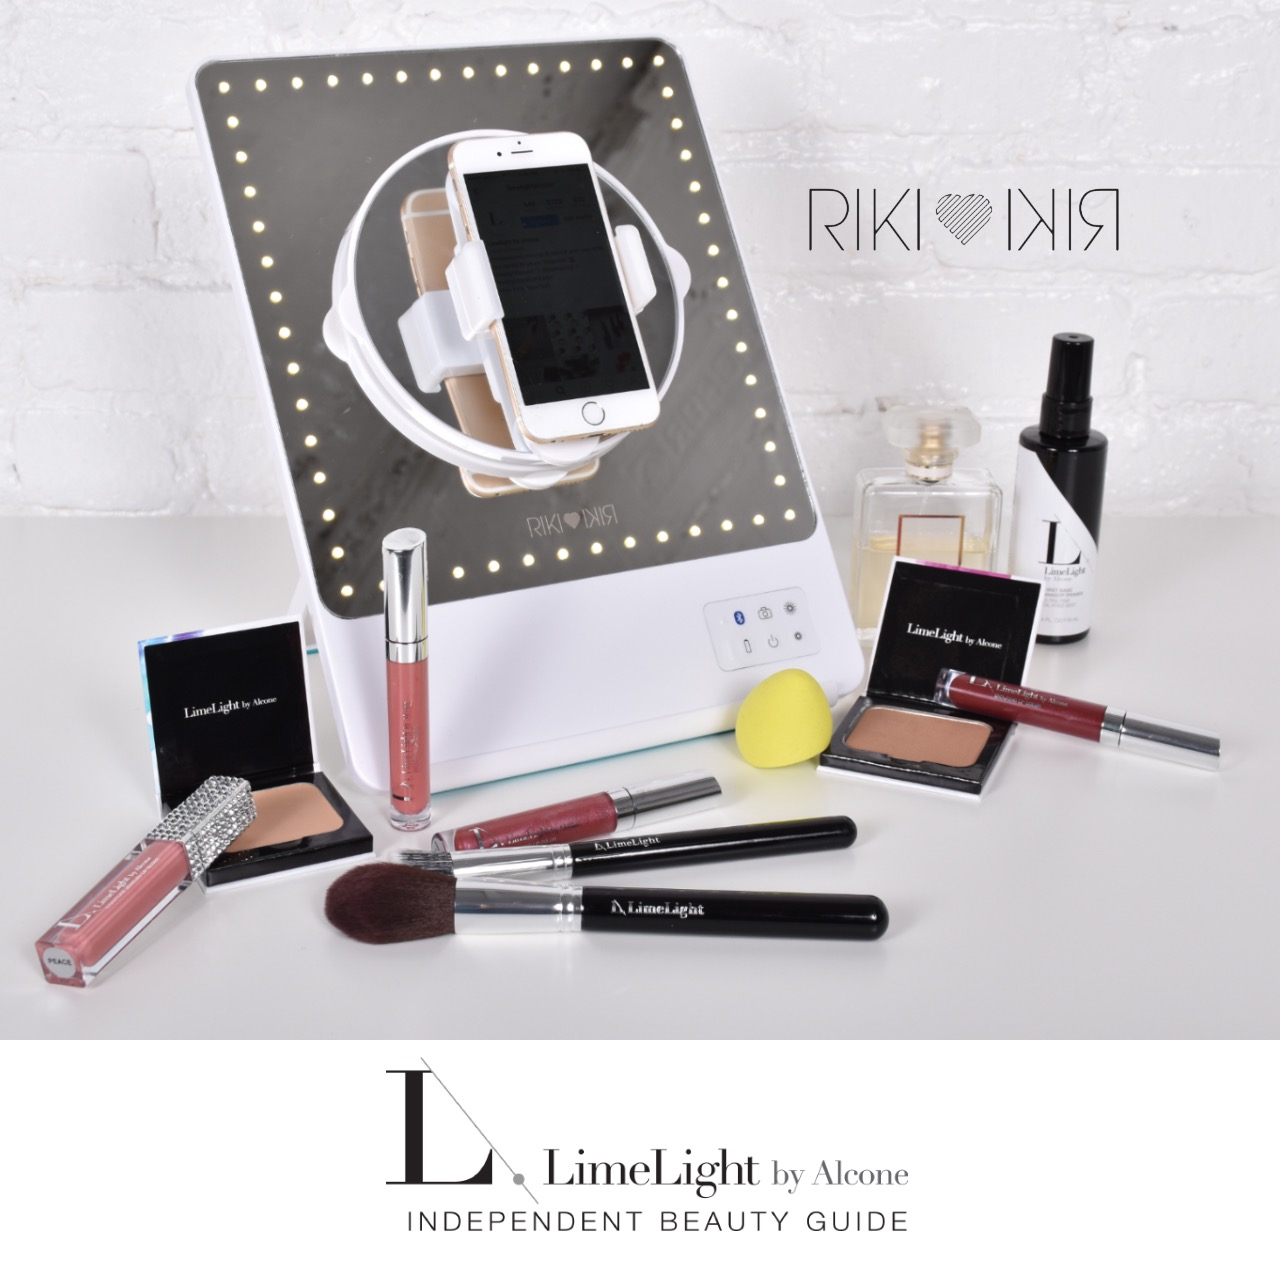 Glossydoll A Place To Share My Passion For Makeup